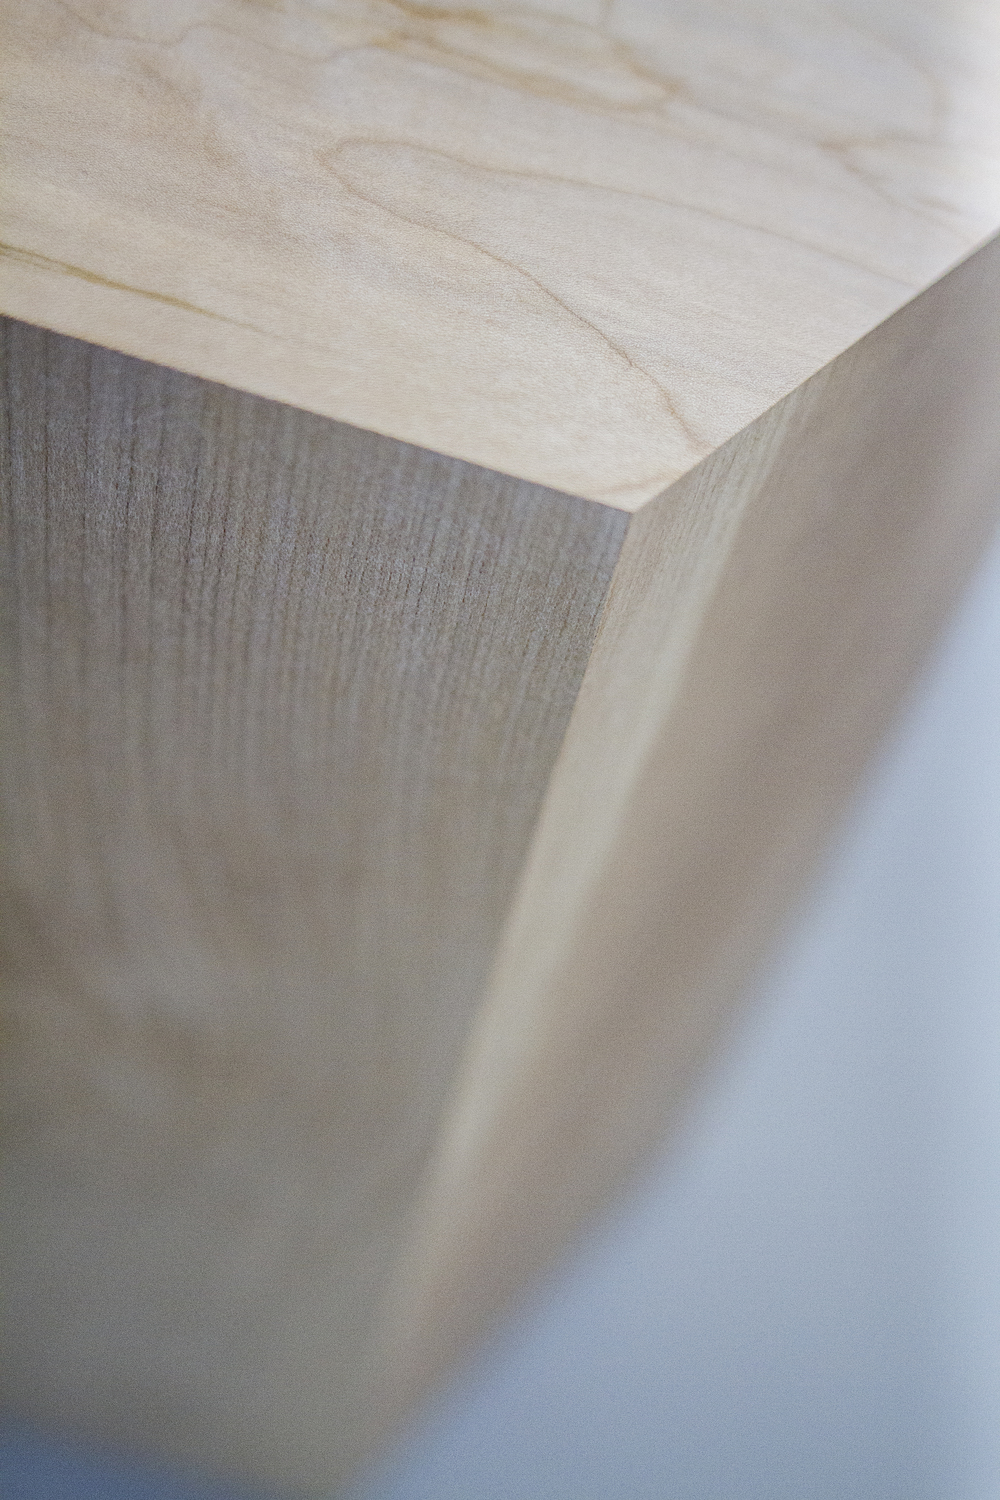 Stool_Exhib (25 of 26).jpg